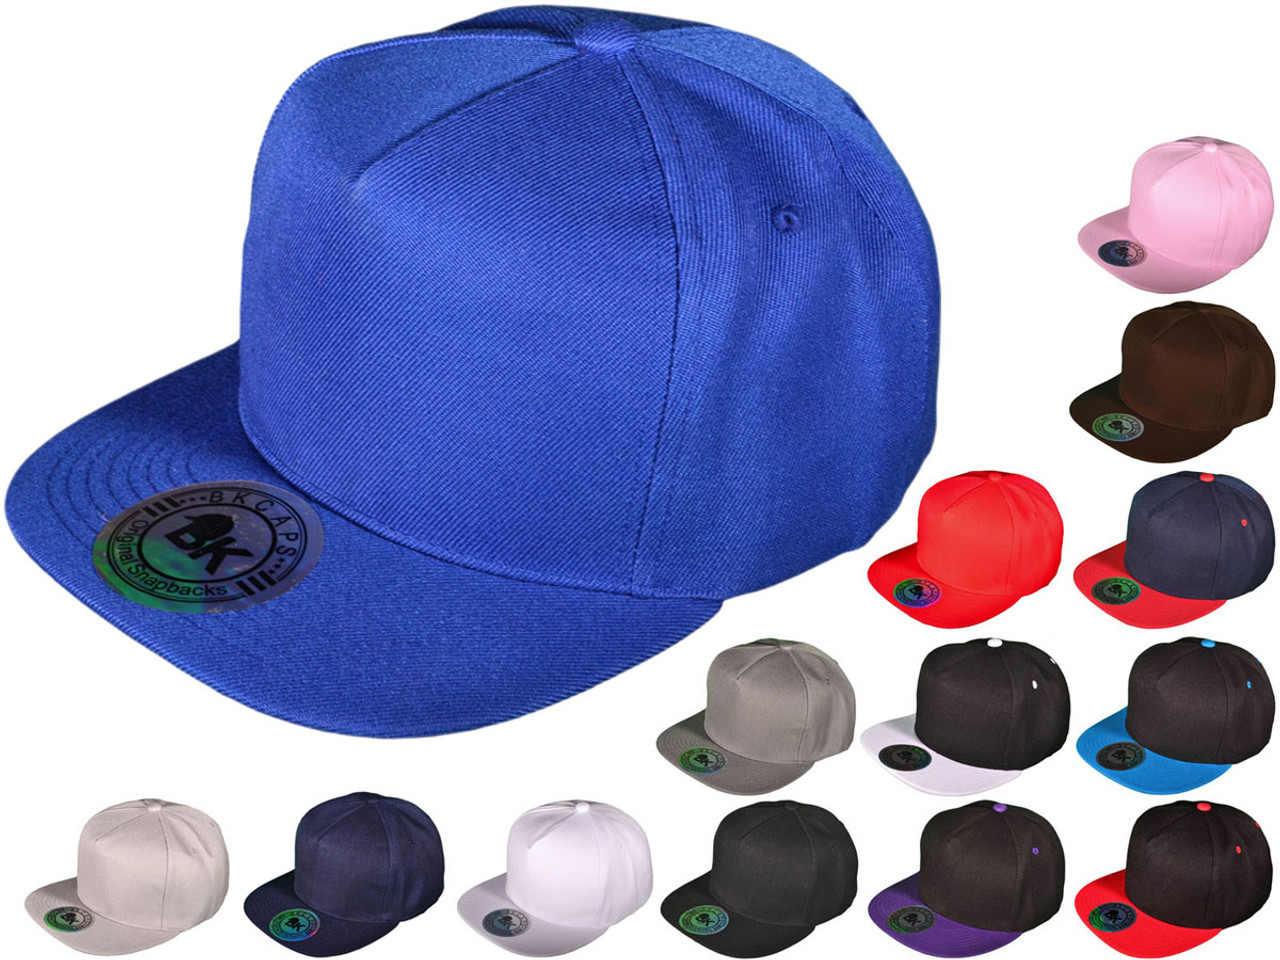 Wholesale BK Caps Flat Bill 5 Panel Snapback Hats with Same Color ... 51fbf90043a